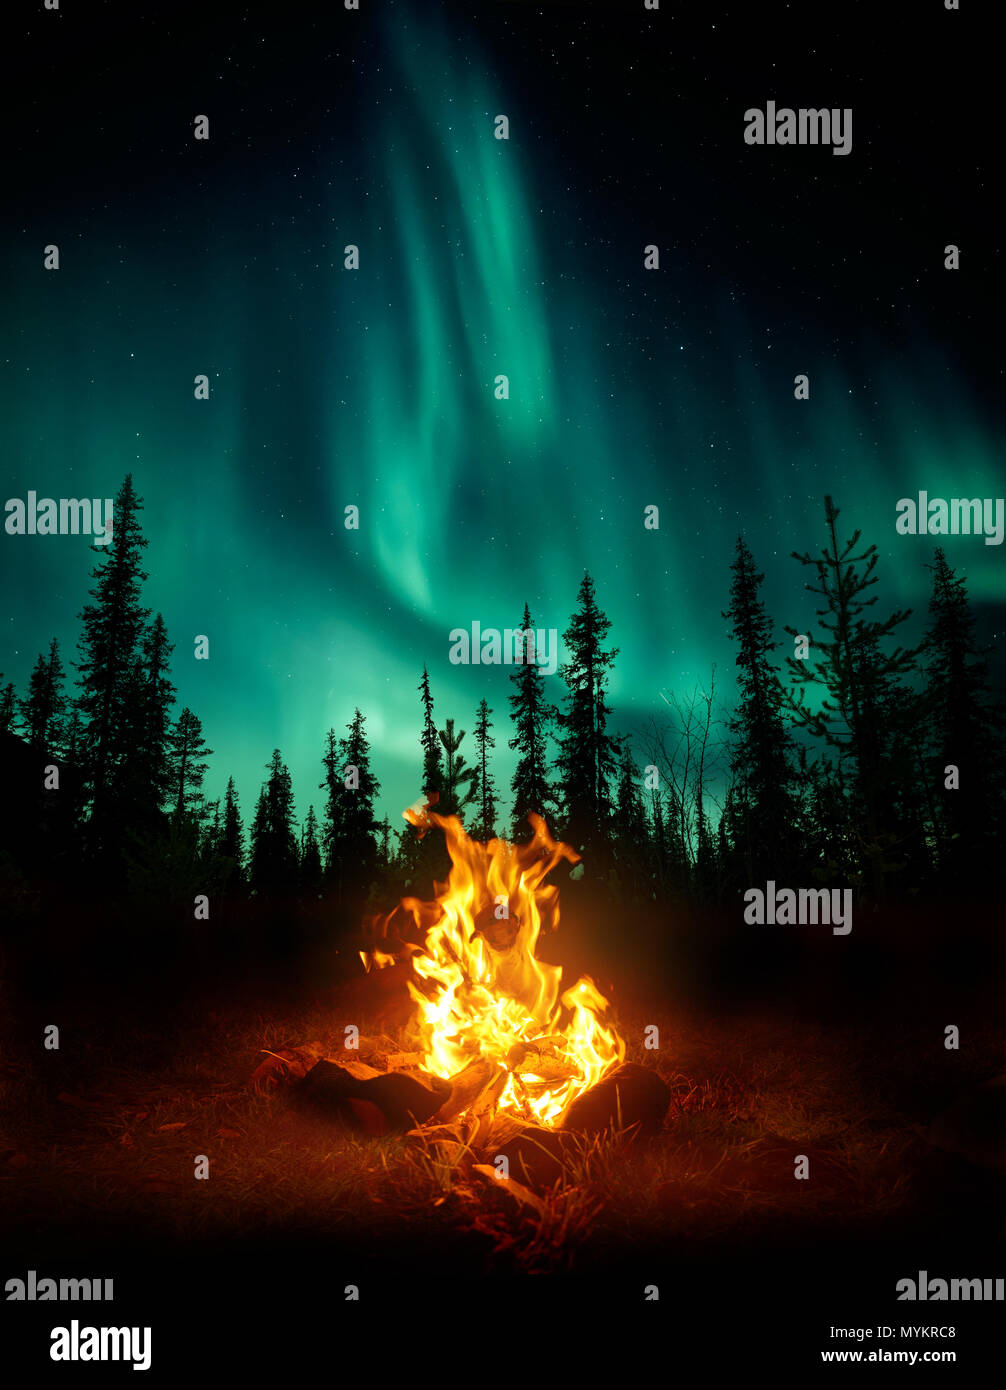 A warm and cosy campfire in the wilderness with forest trees silhouetted in the background and the stars and Northern Lights (Aurora Borealis) lightin - Stock Image